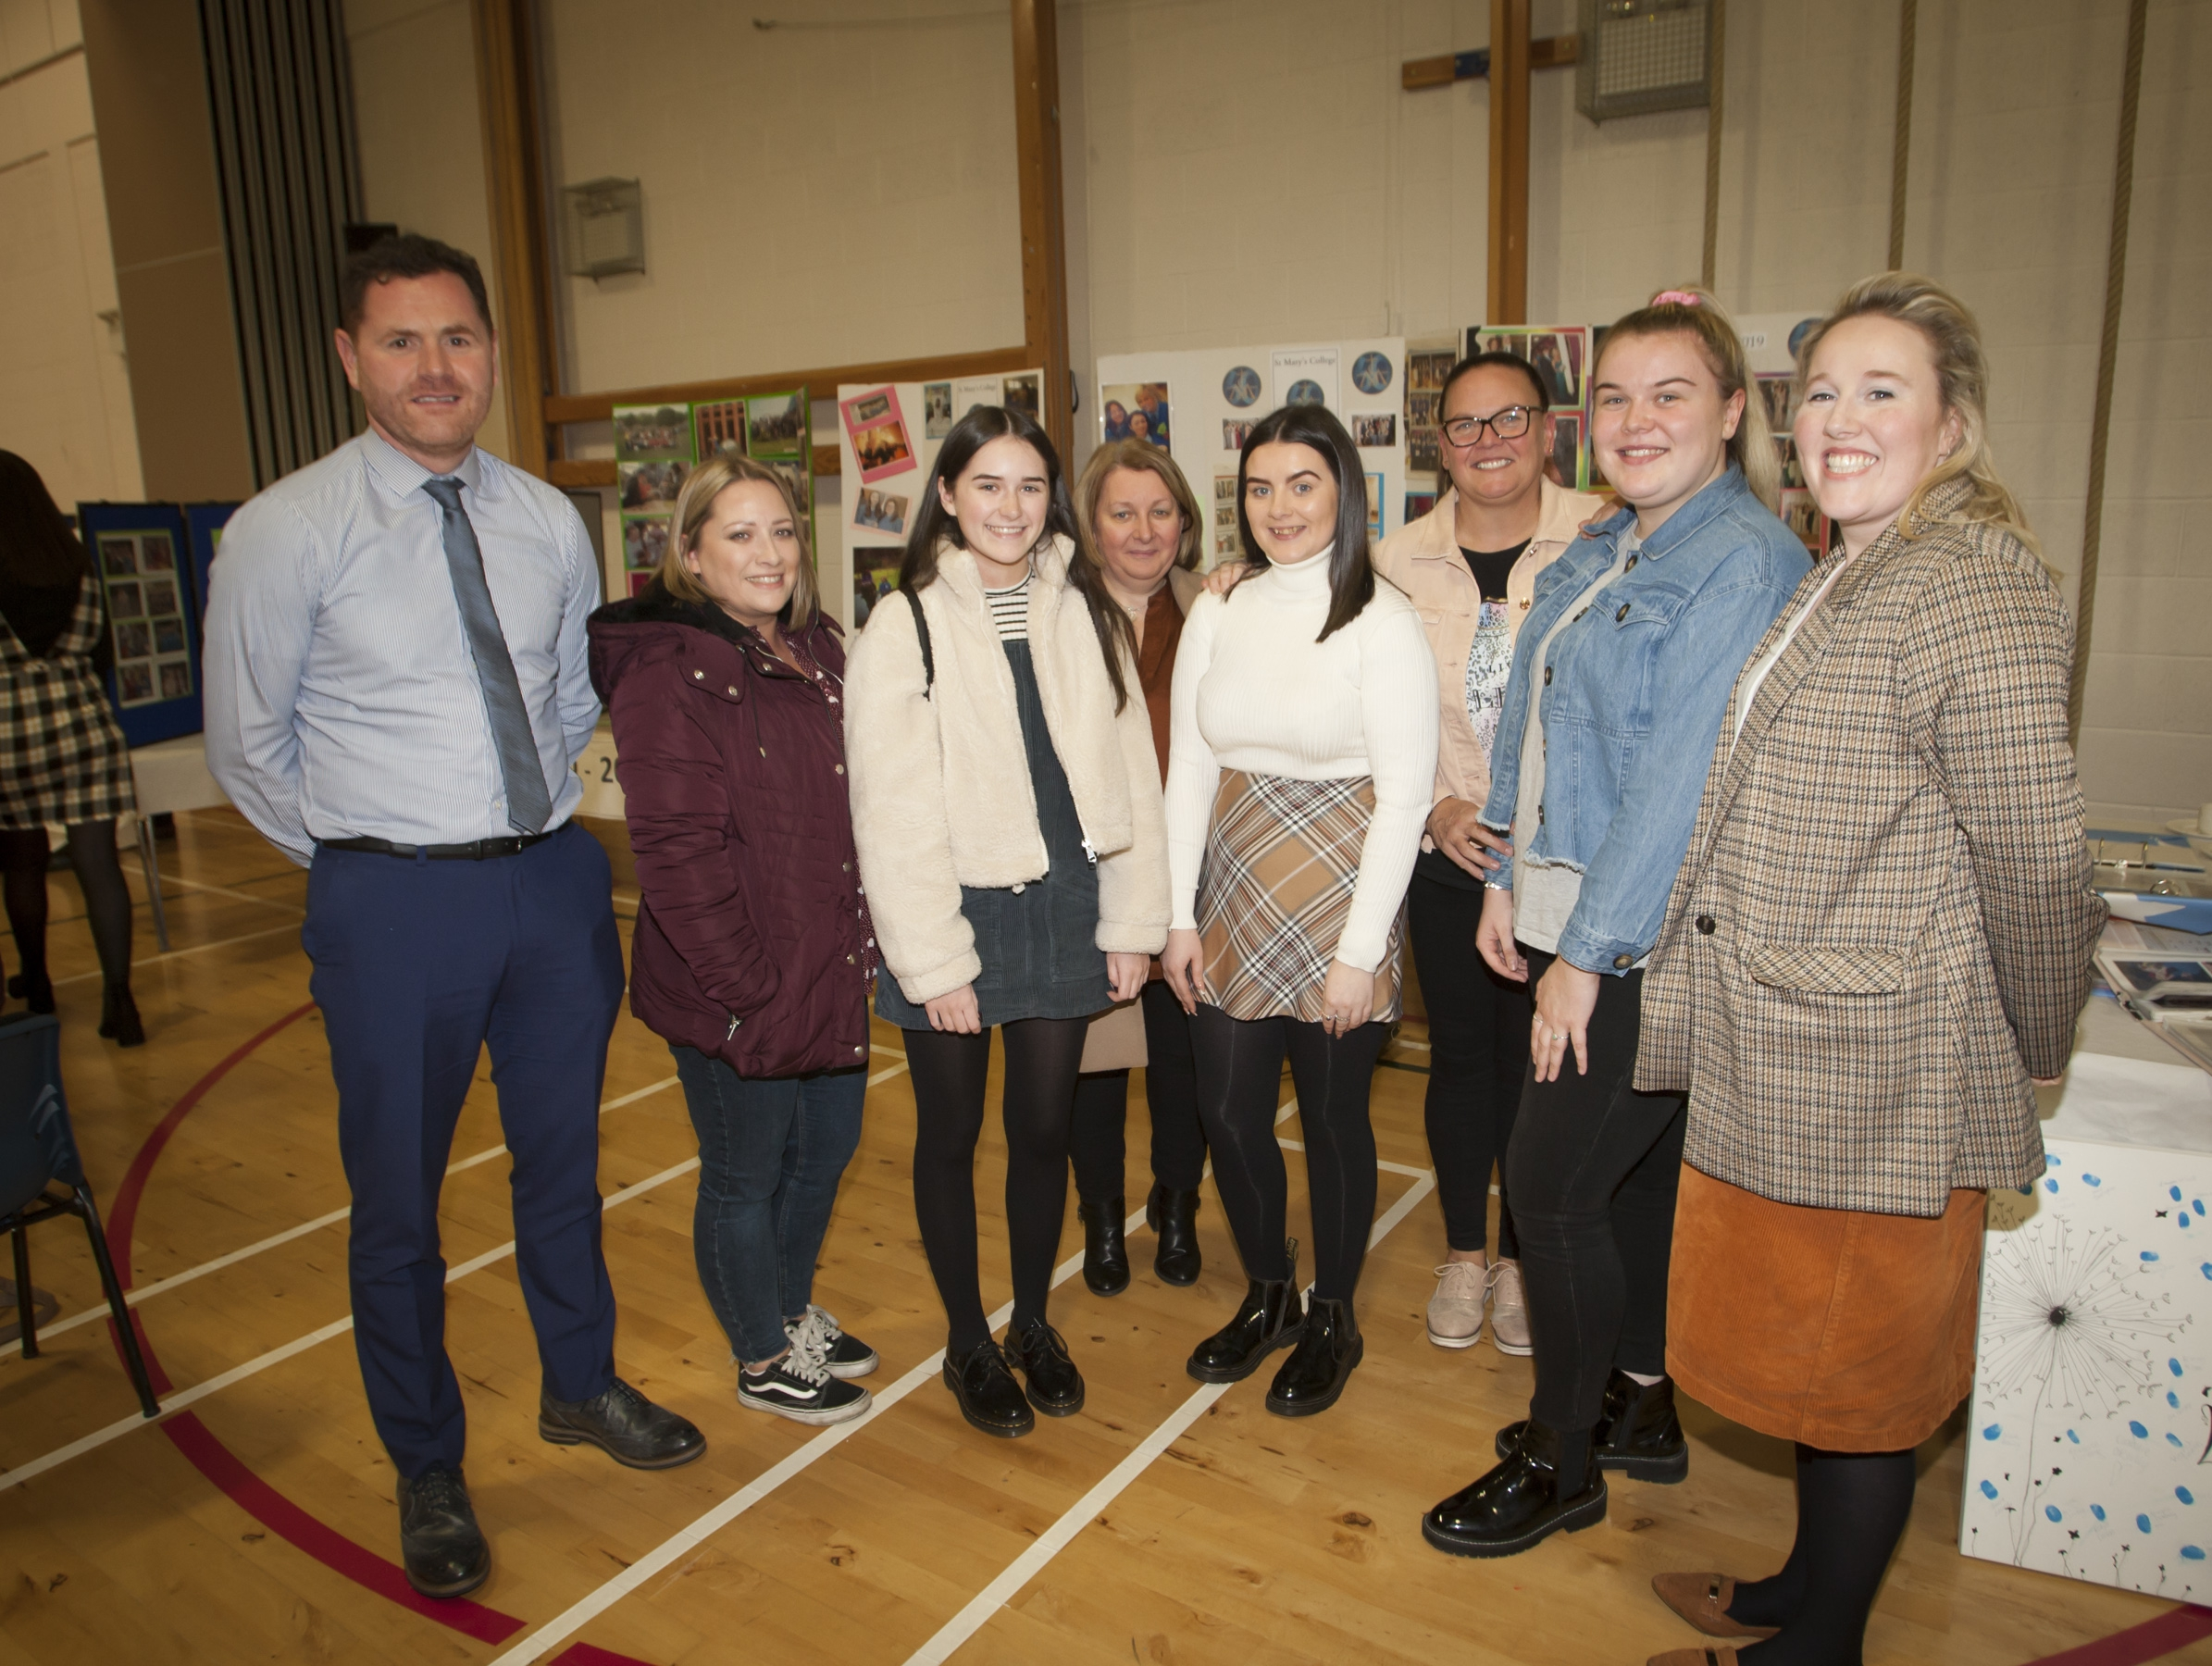 Group pictured at the St. Mary's College 60th Anniversary Exhibition at the school on Friday. From left, Mr. Conor Lynch, teacher, Julie McGuinness and her daughter Sarah, Angela McCallion and her daughter Lauren, Sharon Knox and daughter Shannon and Mrs. Caroline Rogan, teacher.